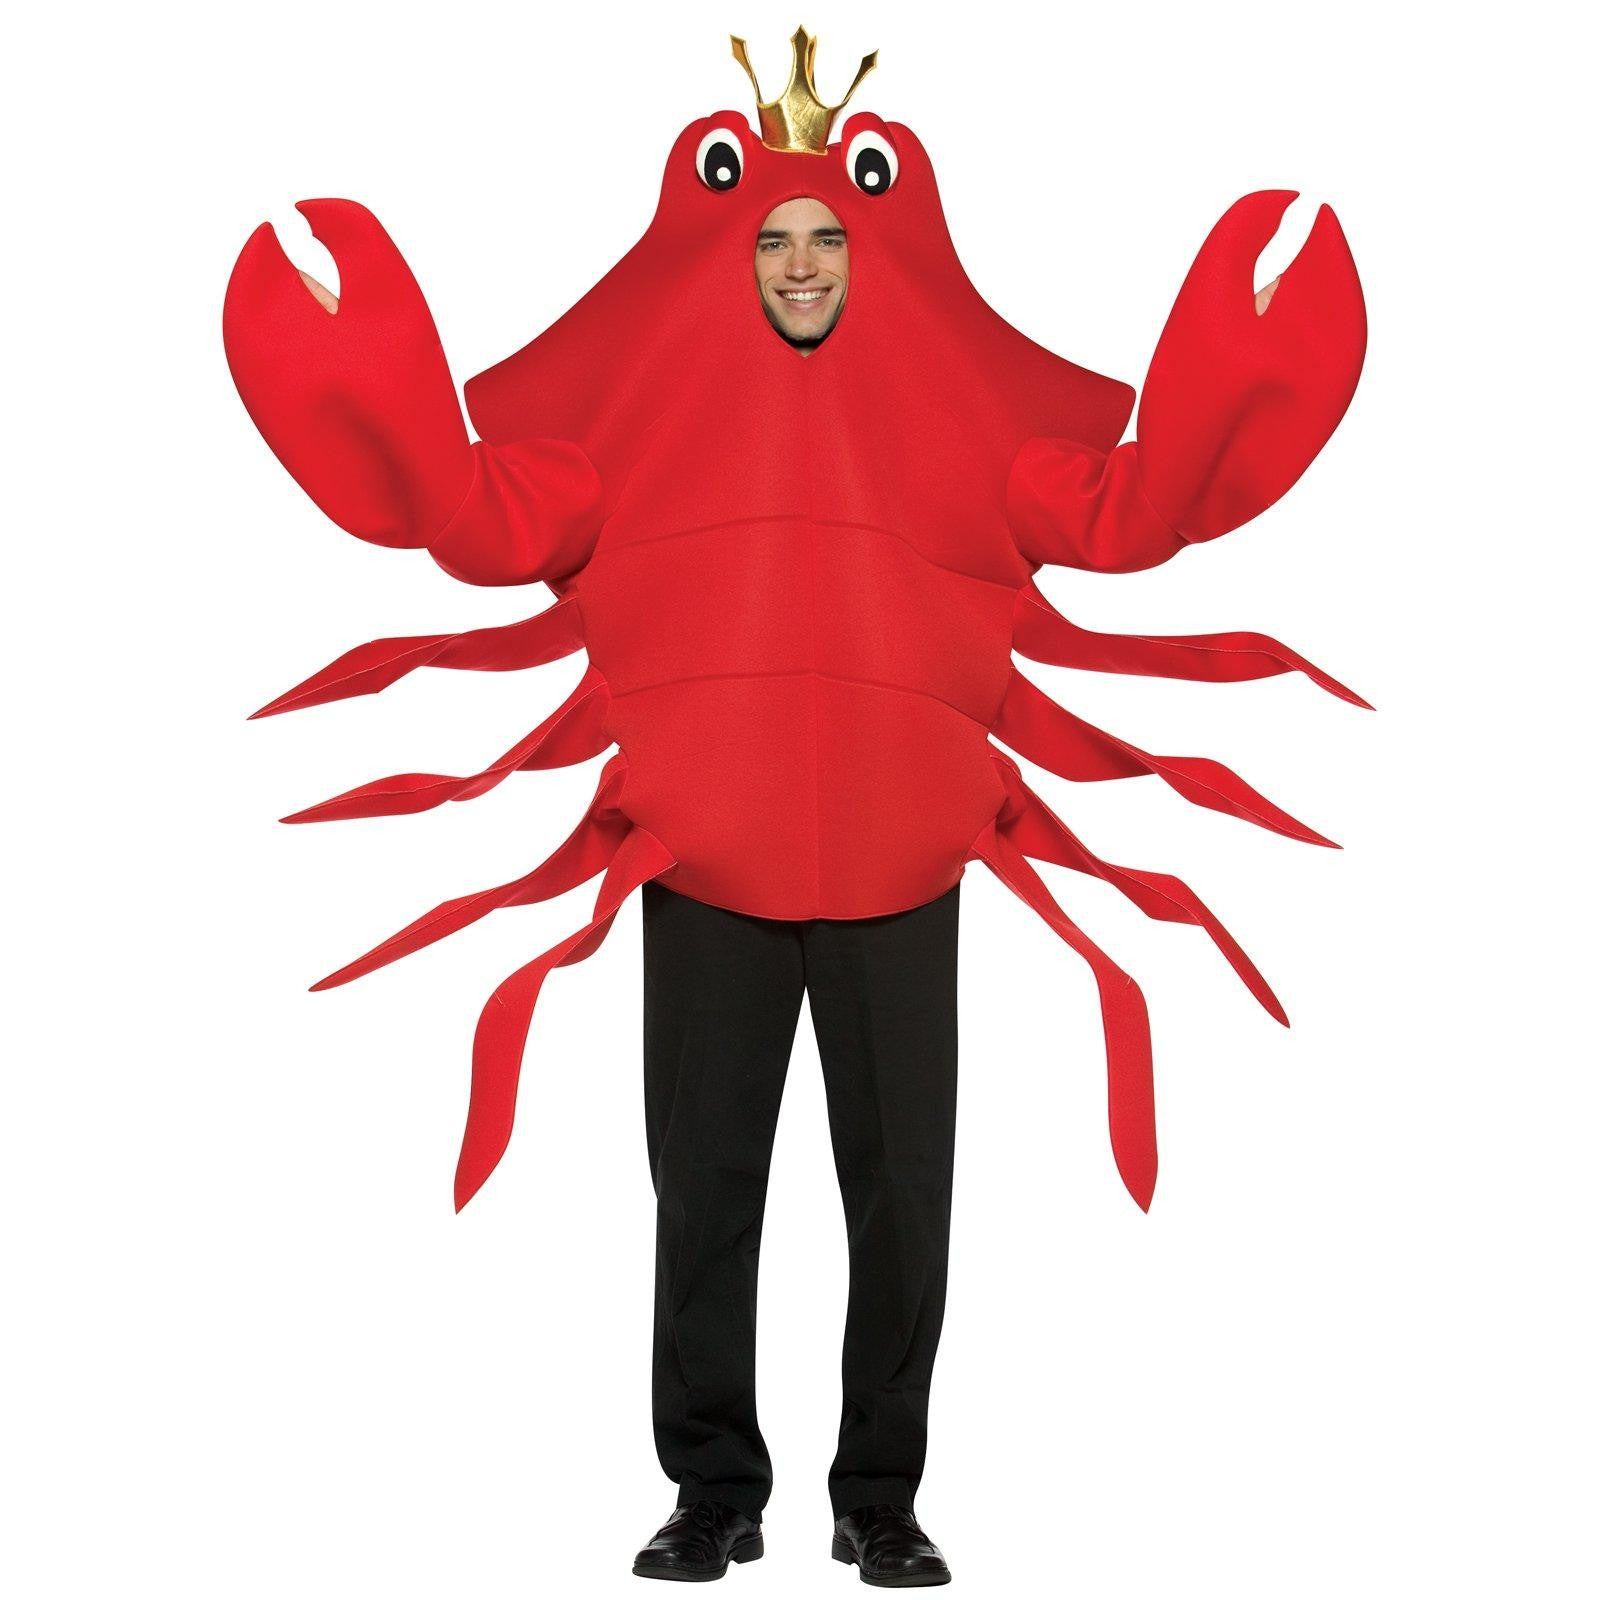 Don't be Crabby that you are getting married - Adult Solo Cup holding Crab and Lobster Costume